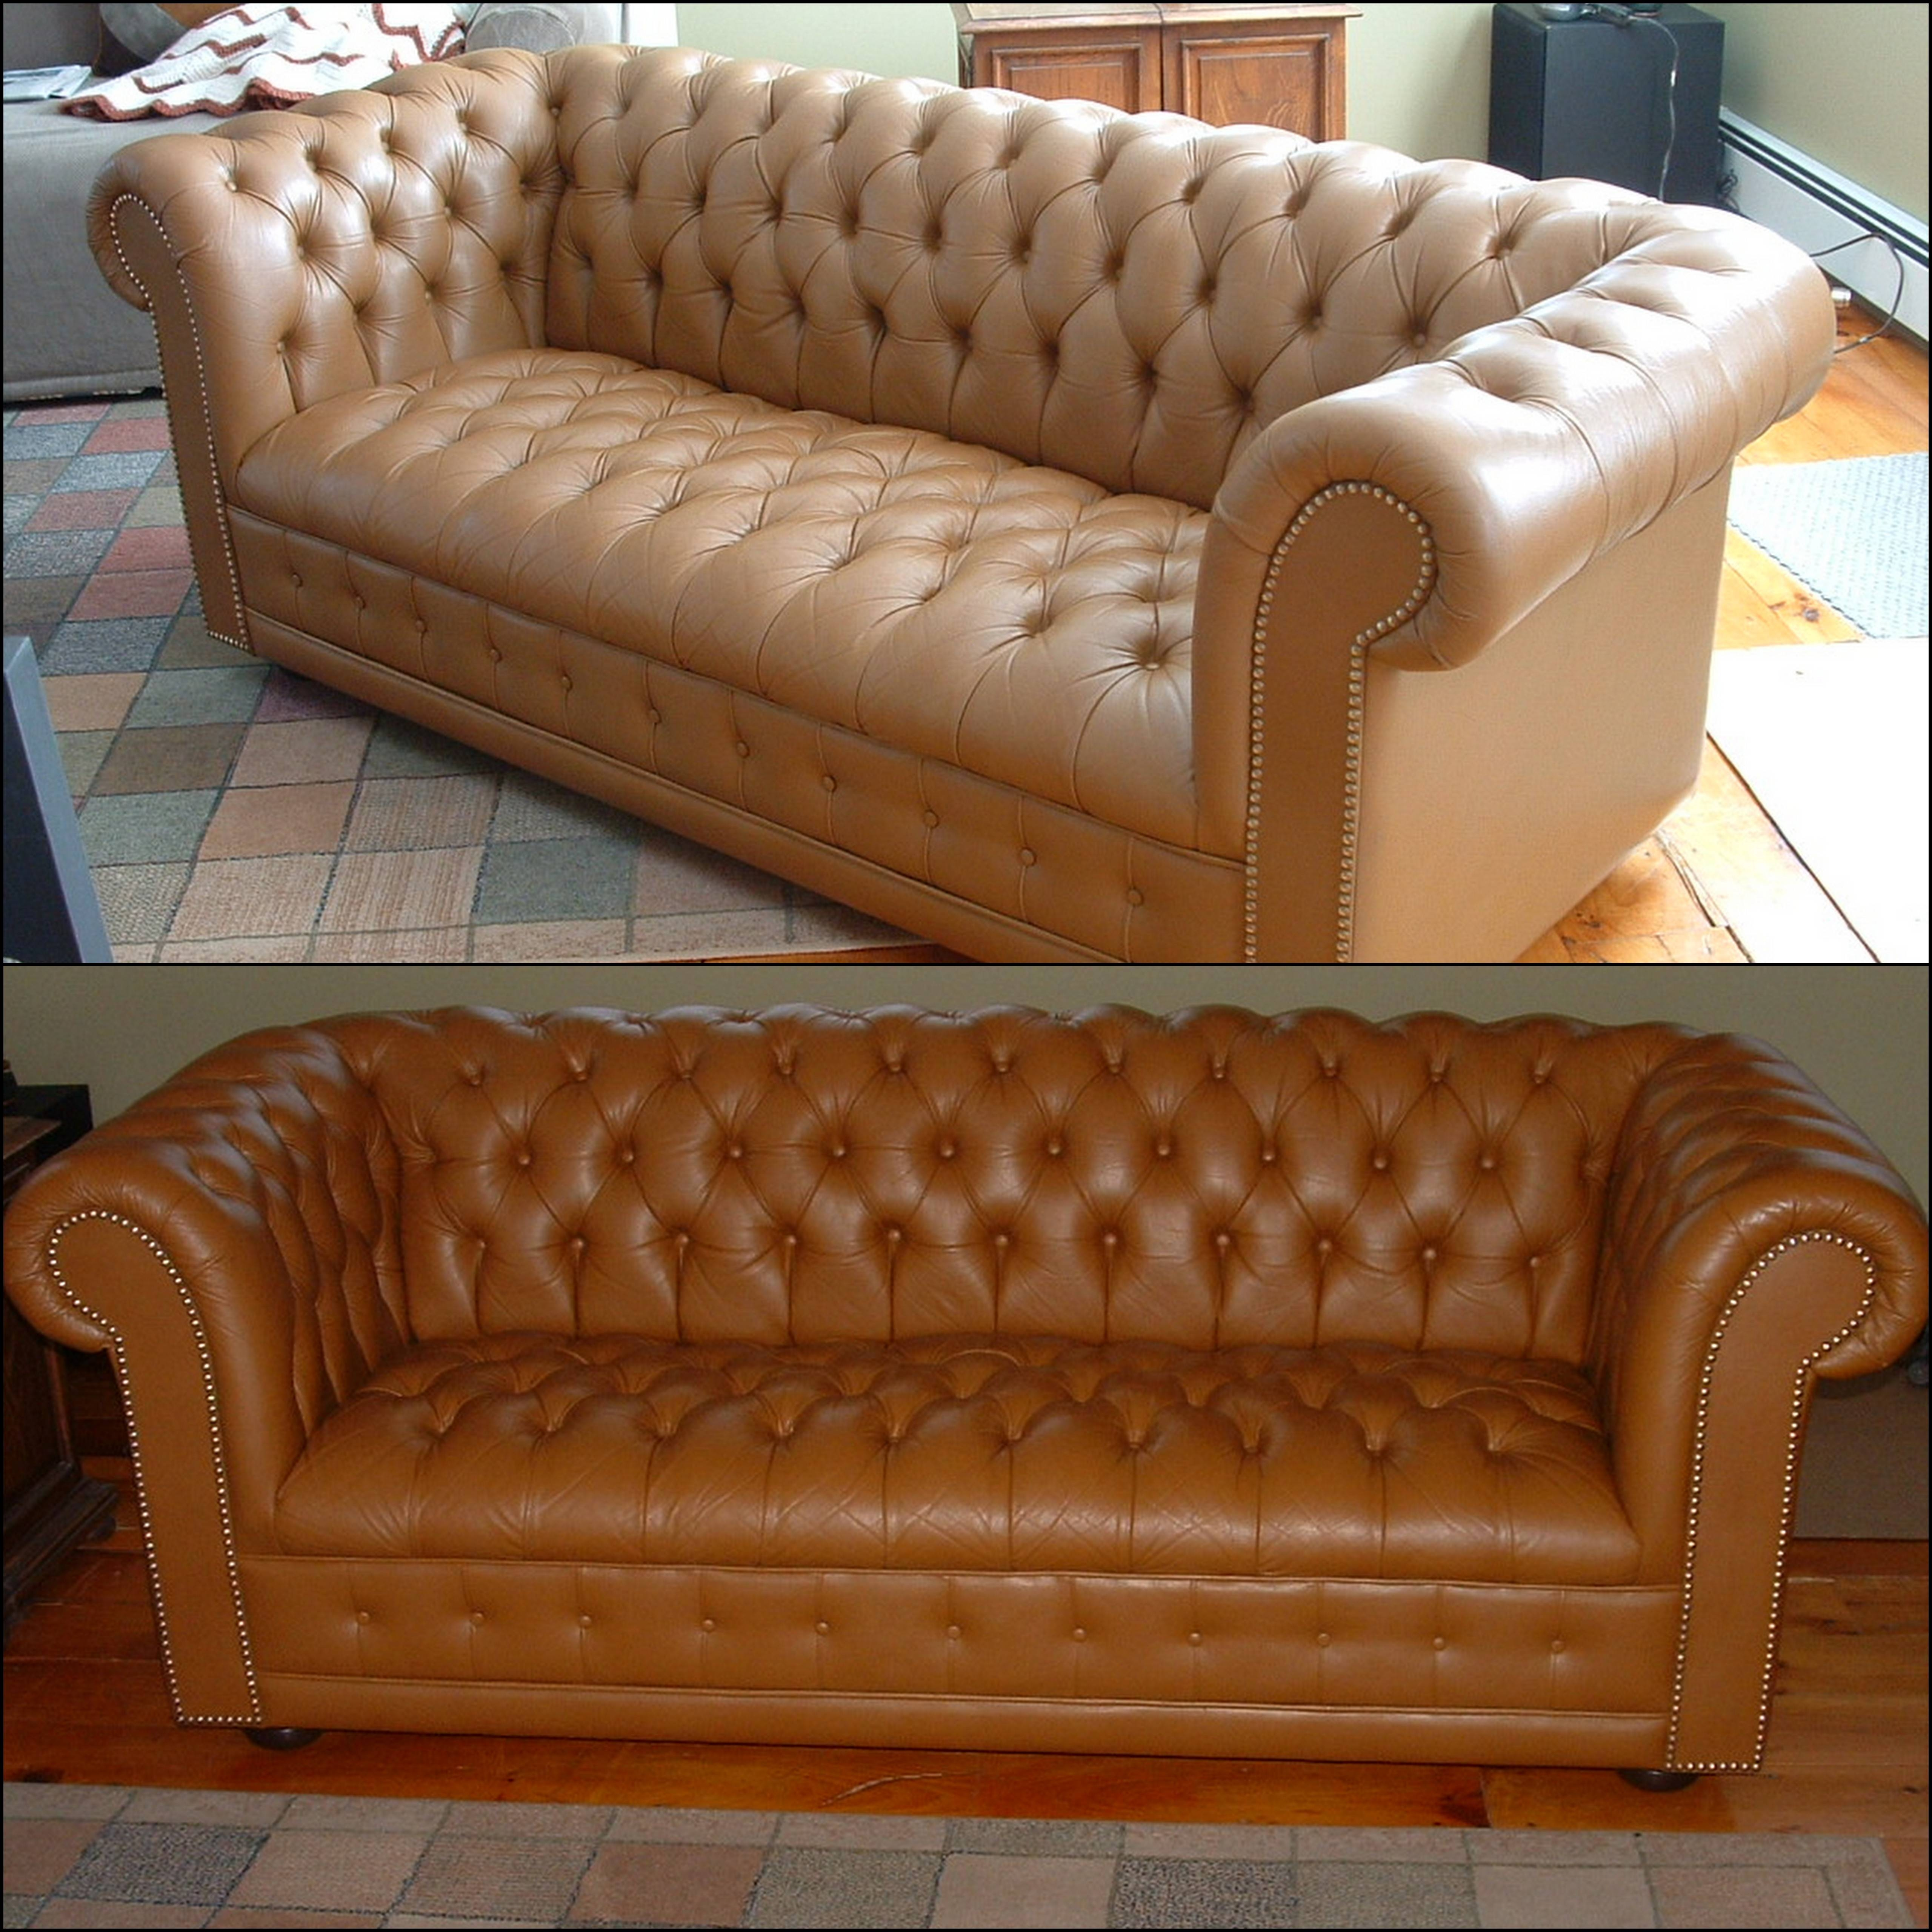 Inspirational Camel Color Leather Couch 81 About Remodel Sofa Room Throughout Camel Color Leather Sofas (Photo 1 of 15)